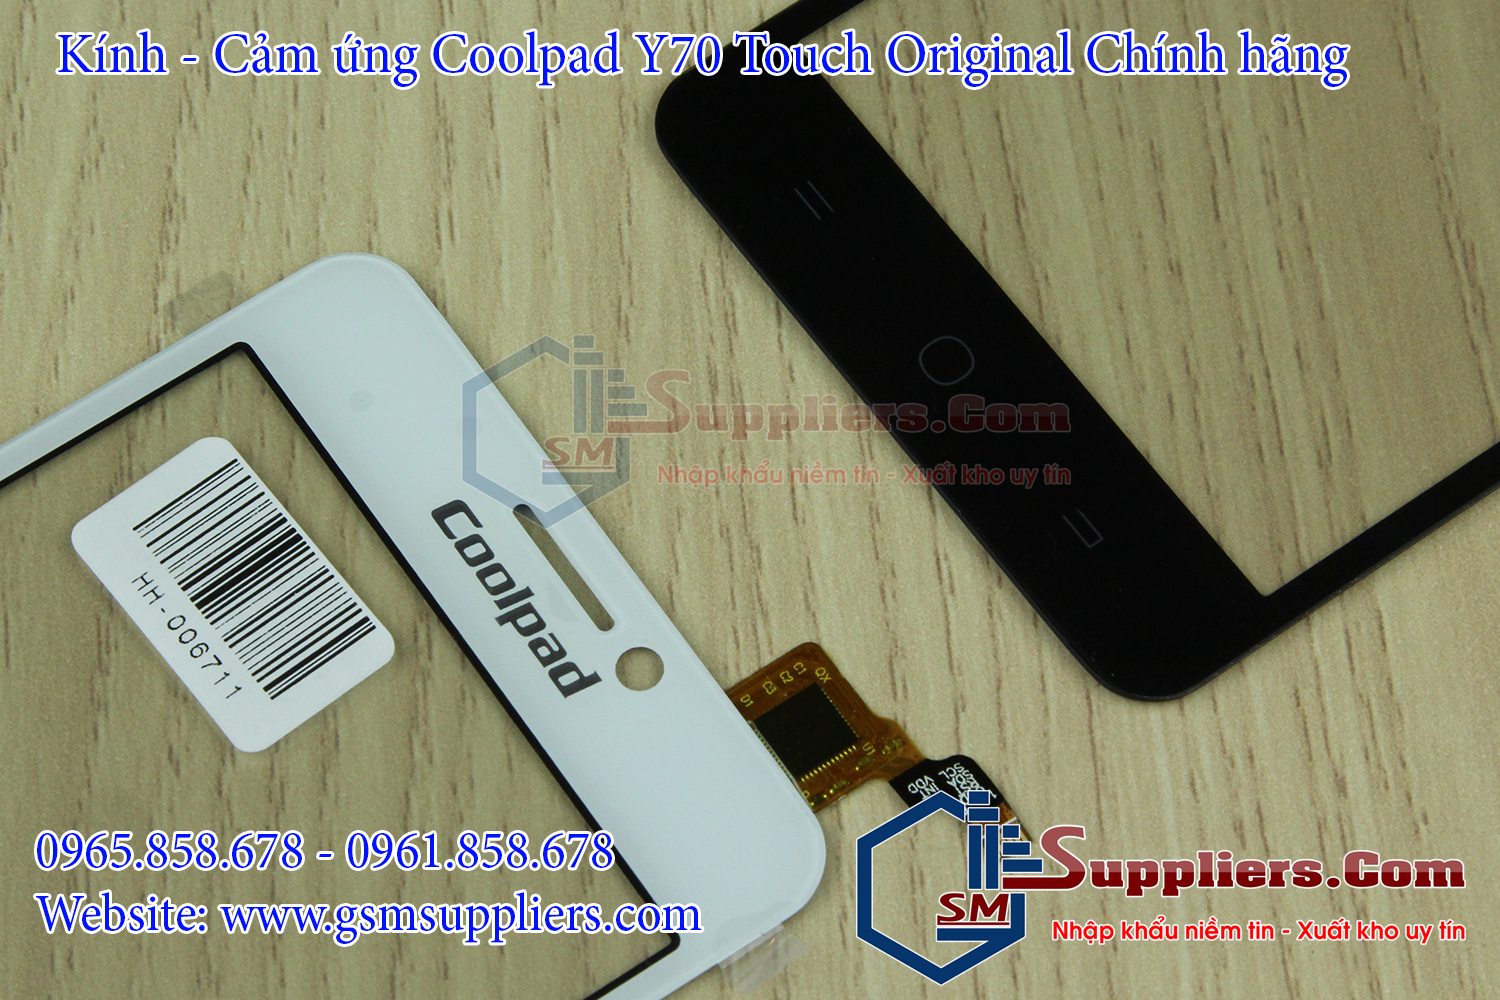 cam ung coolpad y70 hang chinh hang gia re tai ha noi 2